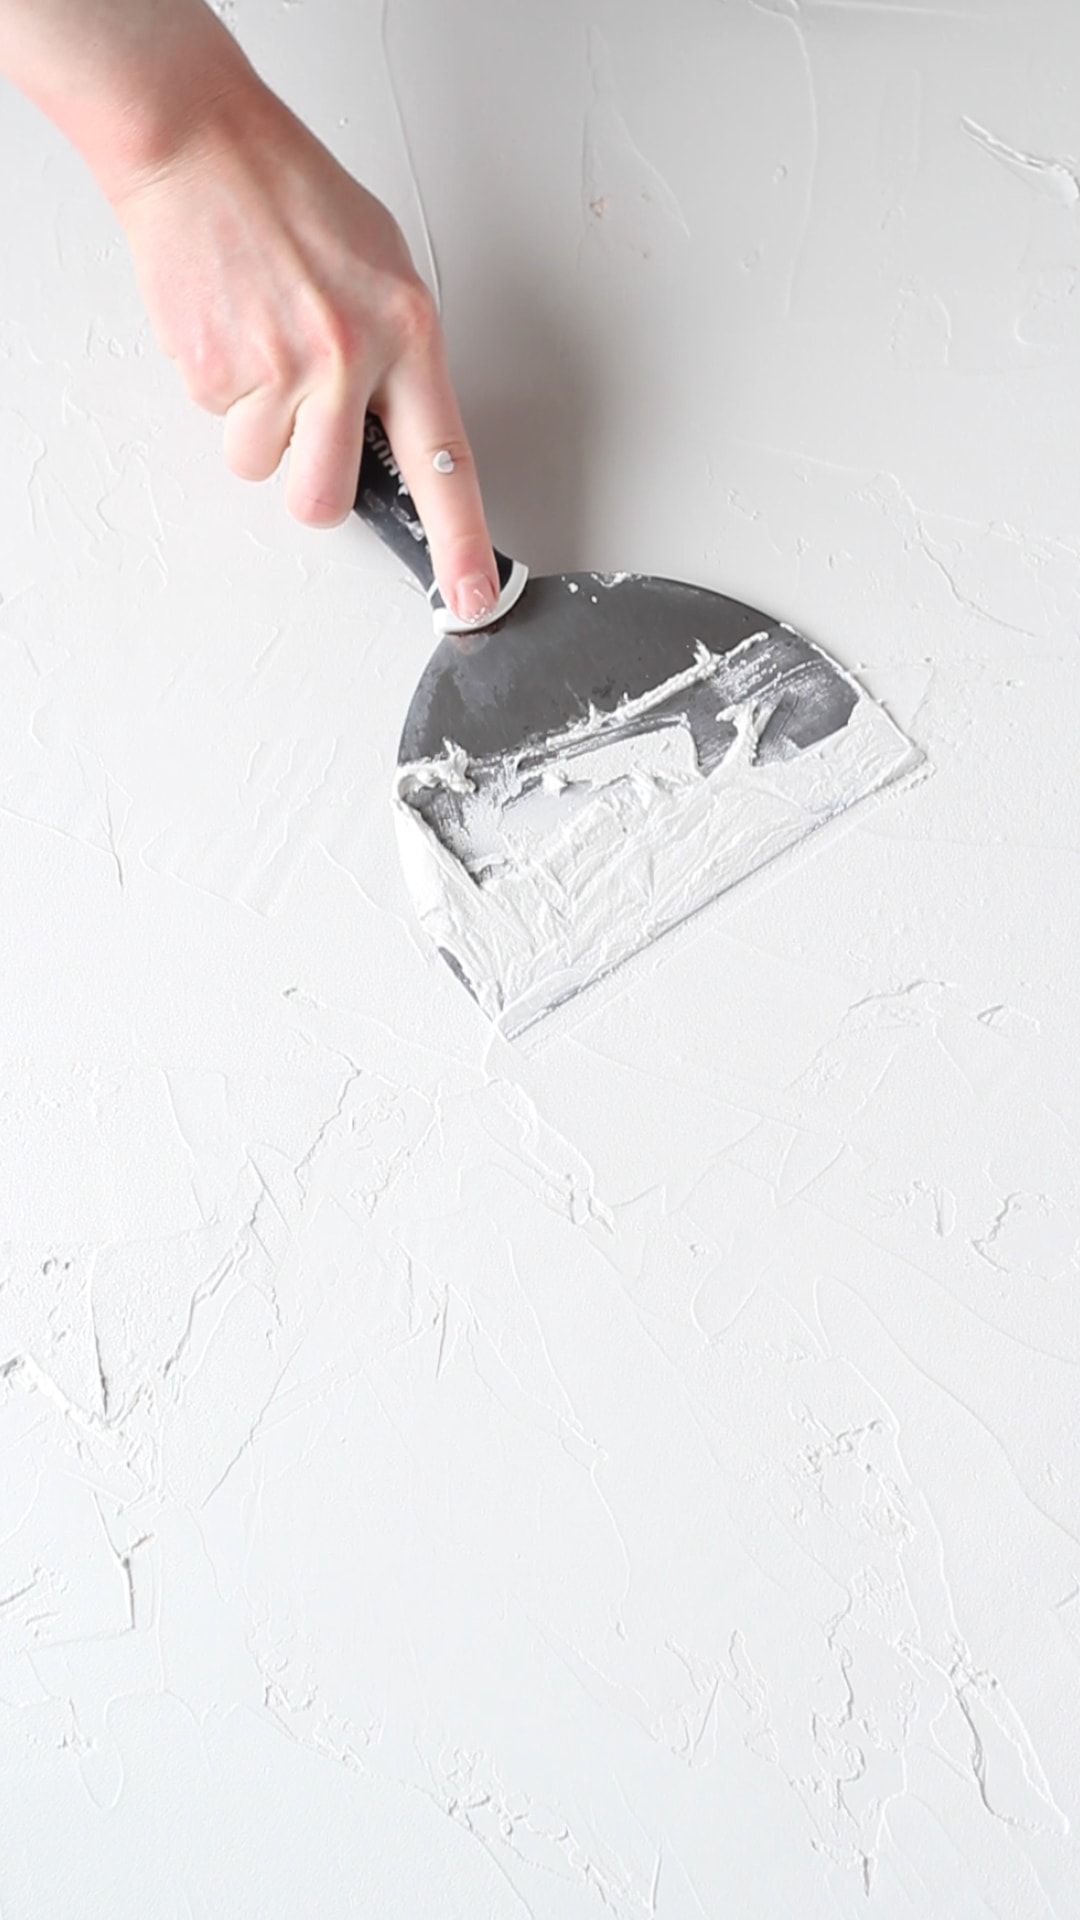 Applying joint compound to a board to make a diy photography backdrop.